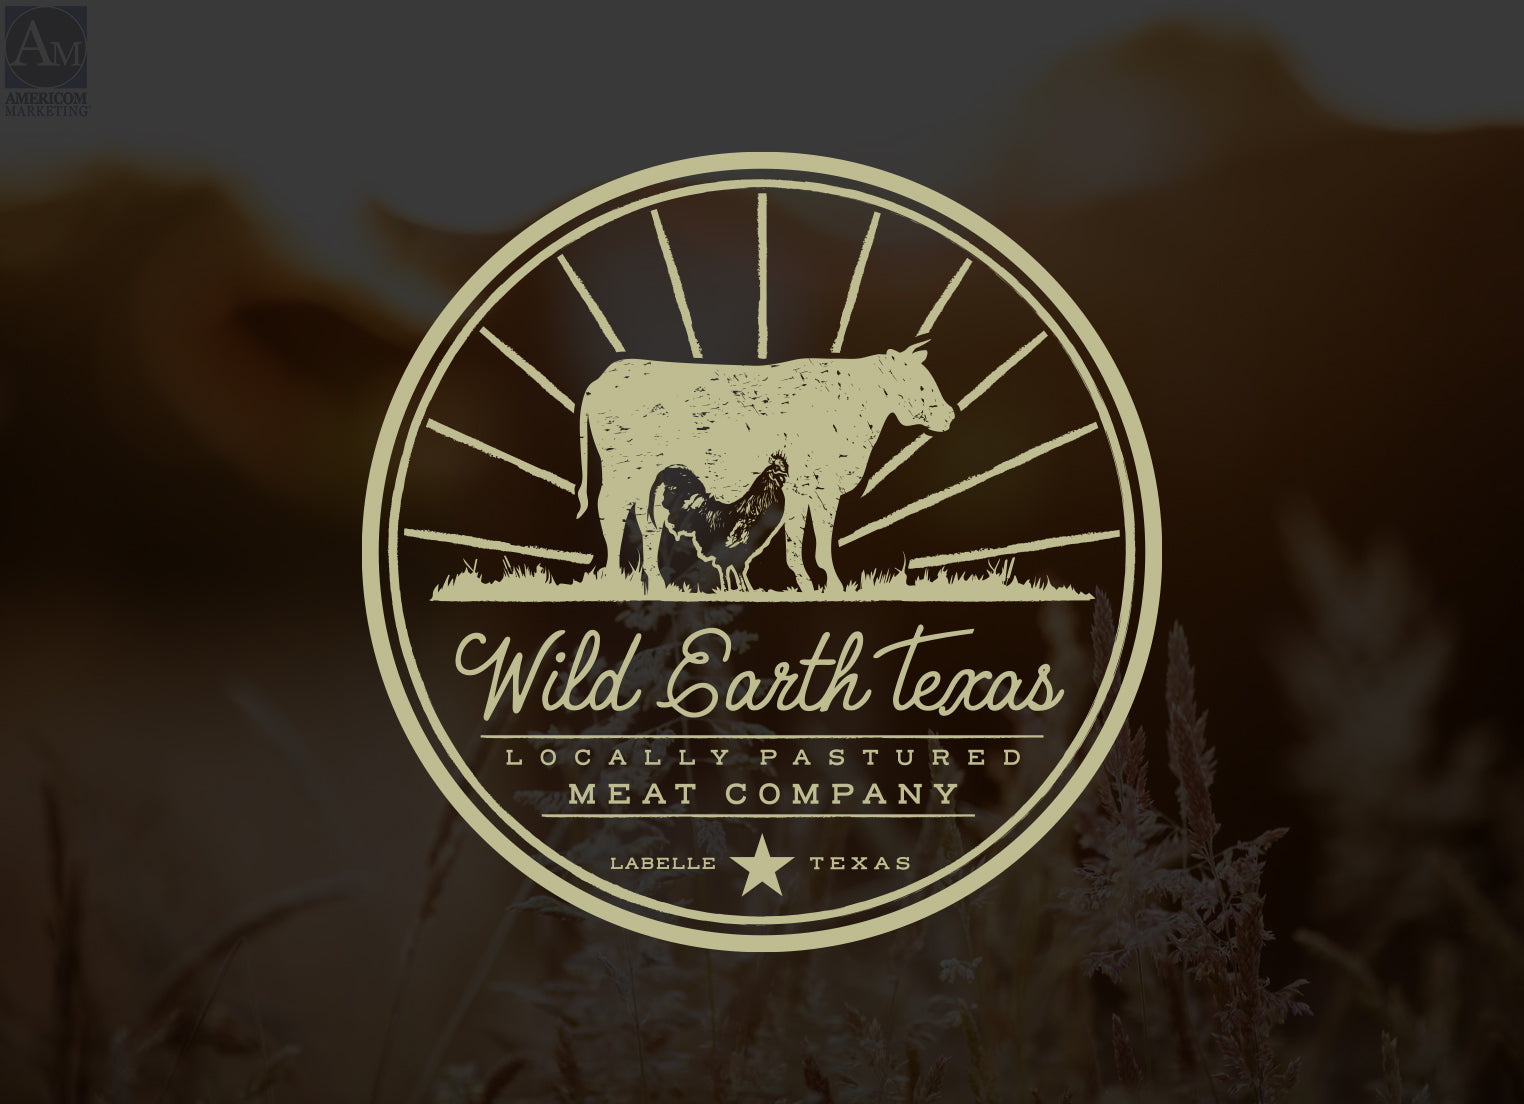 Wild Earth Texas Locally Pastured Meat Company Labelle, Texas